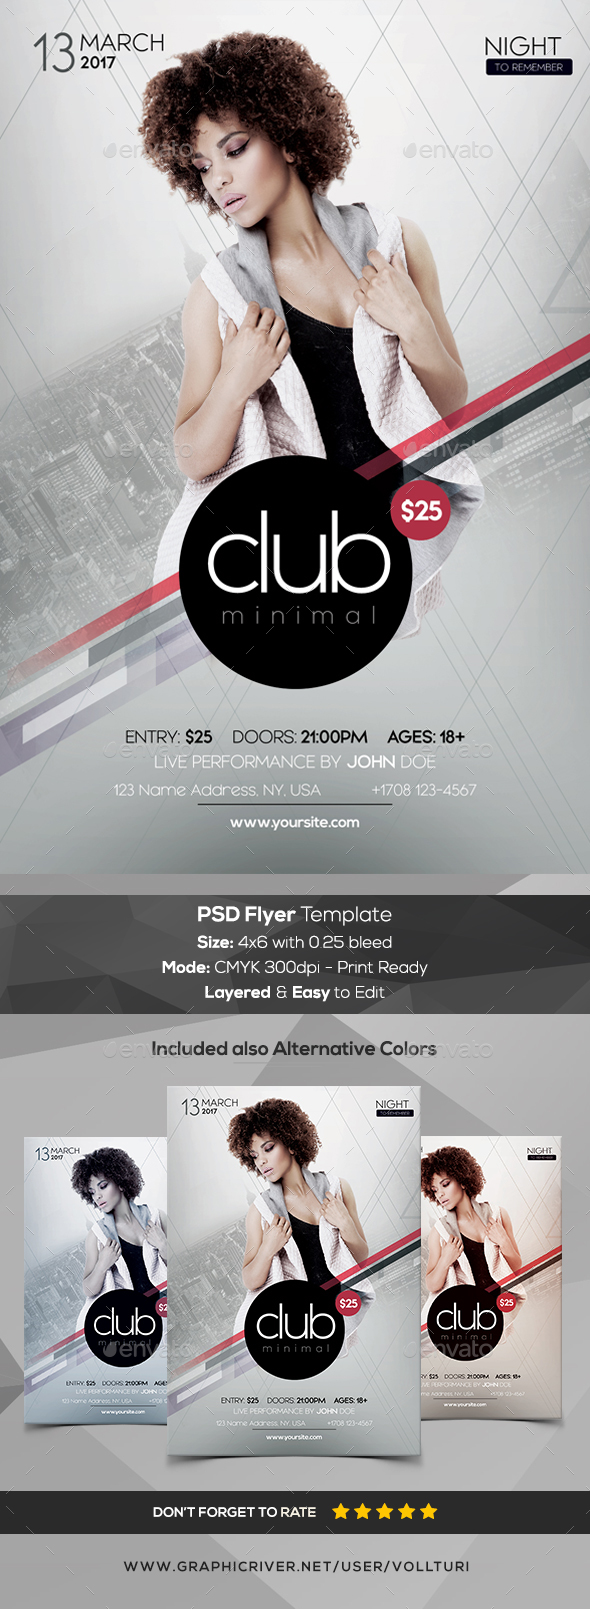 Club Minimal - PSD Flyer Template - Events Flyers